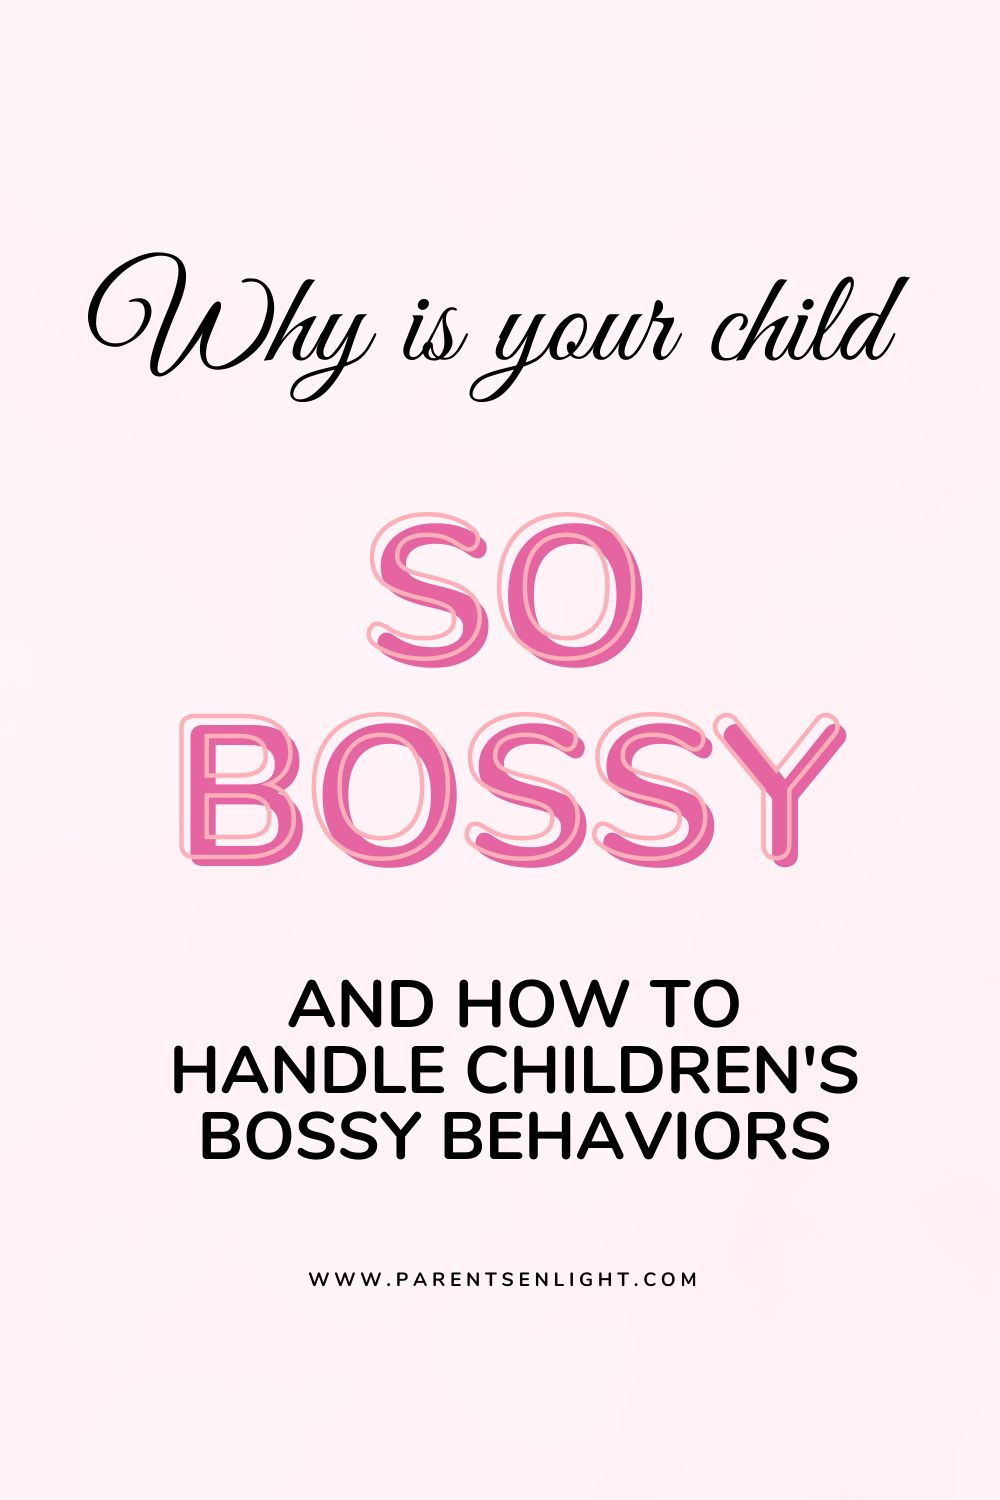 Bossy behaviors can drive parents and siblings nuts! Believe me, I know... The thing is, that bossiness is a strategy to meet a need. Here's what that need is and how it's don. Read more #bossychild #bossybehaviors #whyismychildbossy #positiveparentingsolutions #positiveparentingstrategies #becomeapositiveparent #positiveparentingeducation